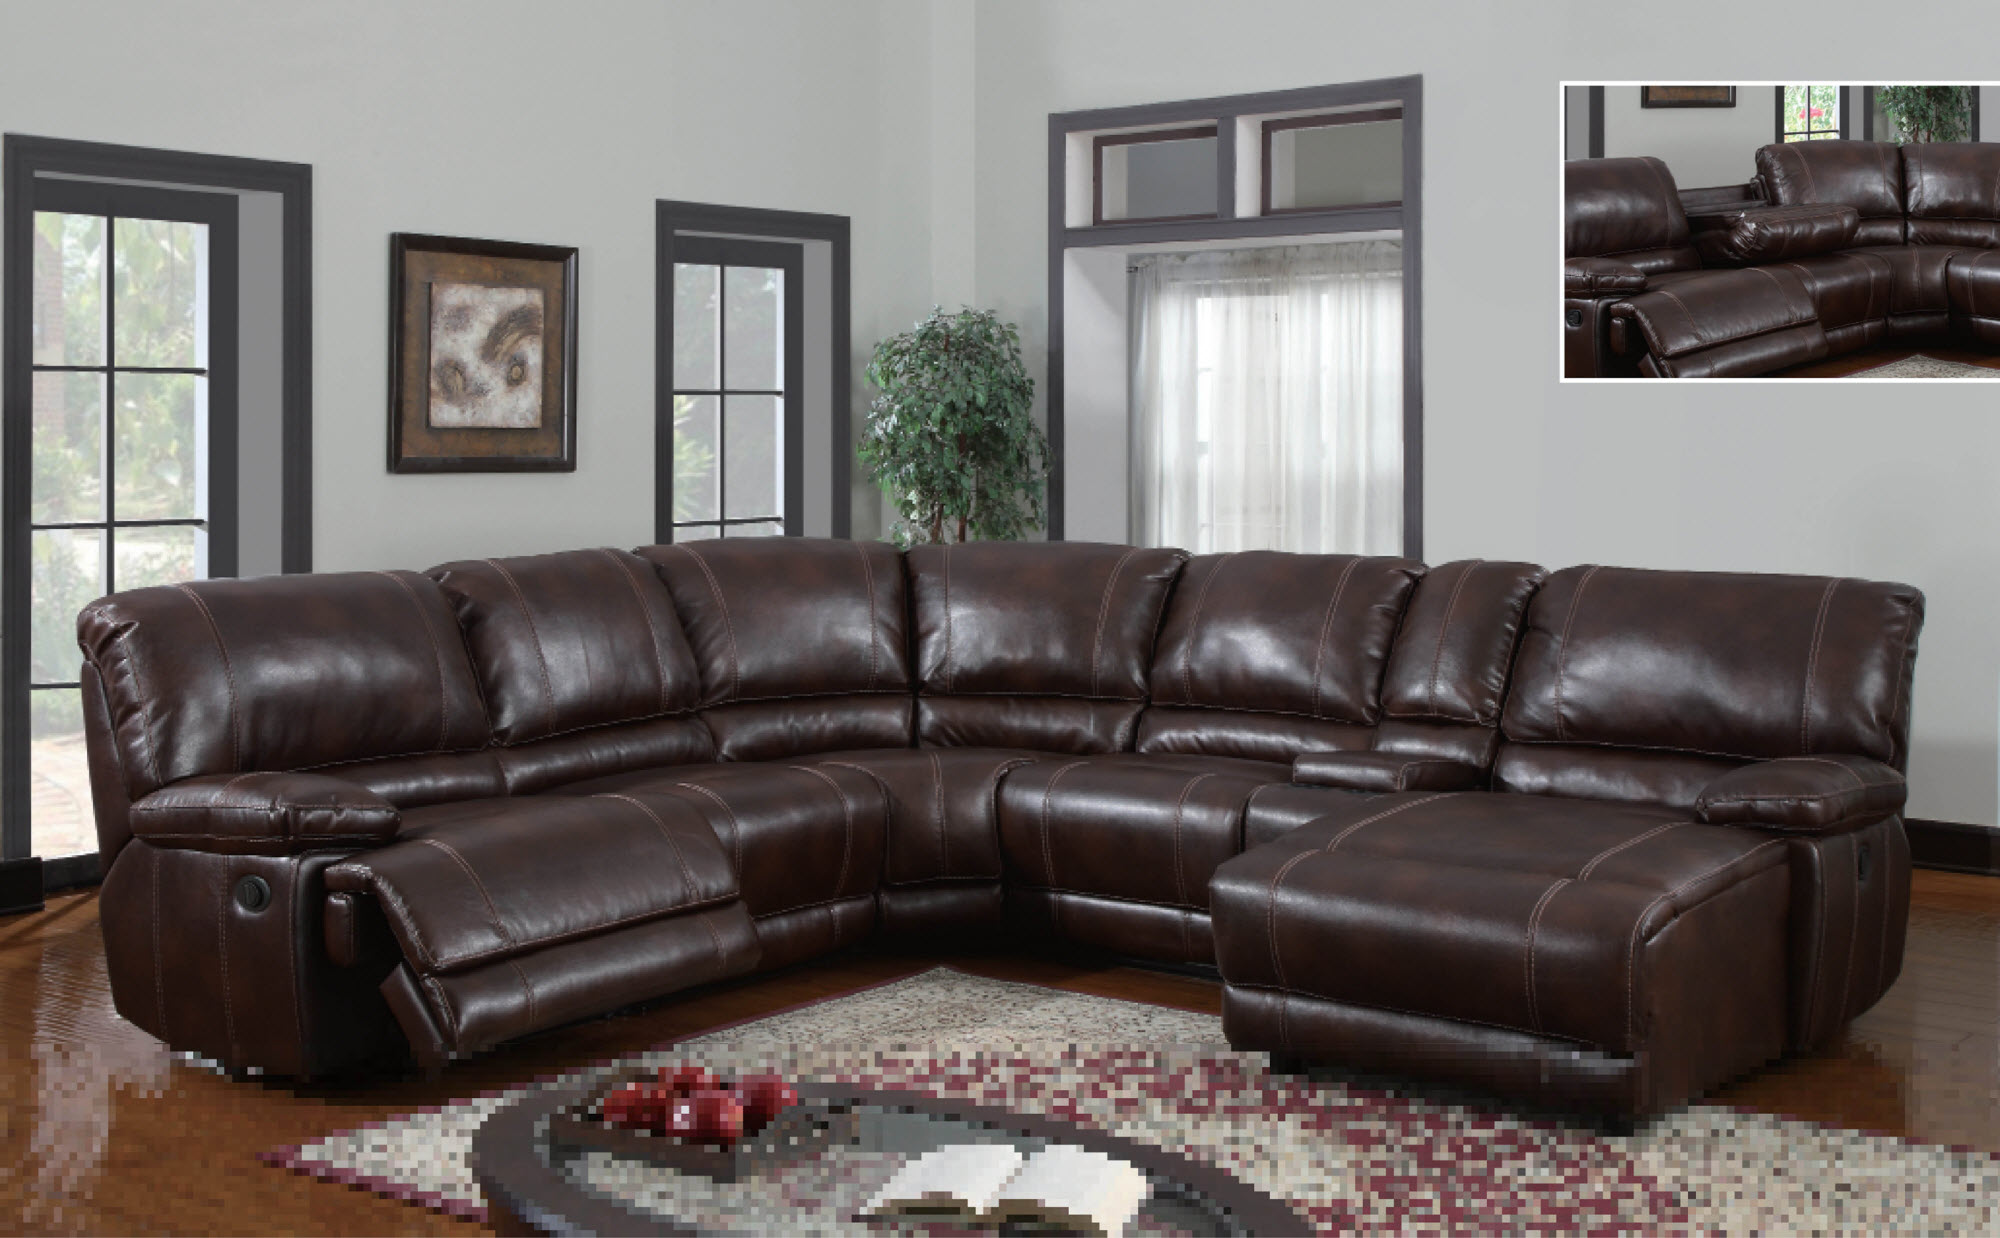 brooklyn bonded leather lounger chair and ottoman plush office furniture in at gogofurniture com brown sectional sofa with decorative stitching